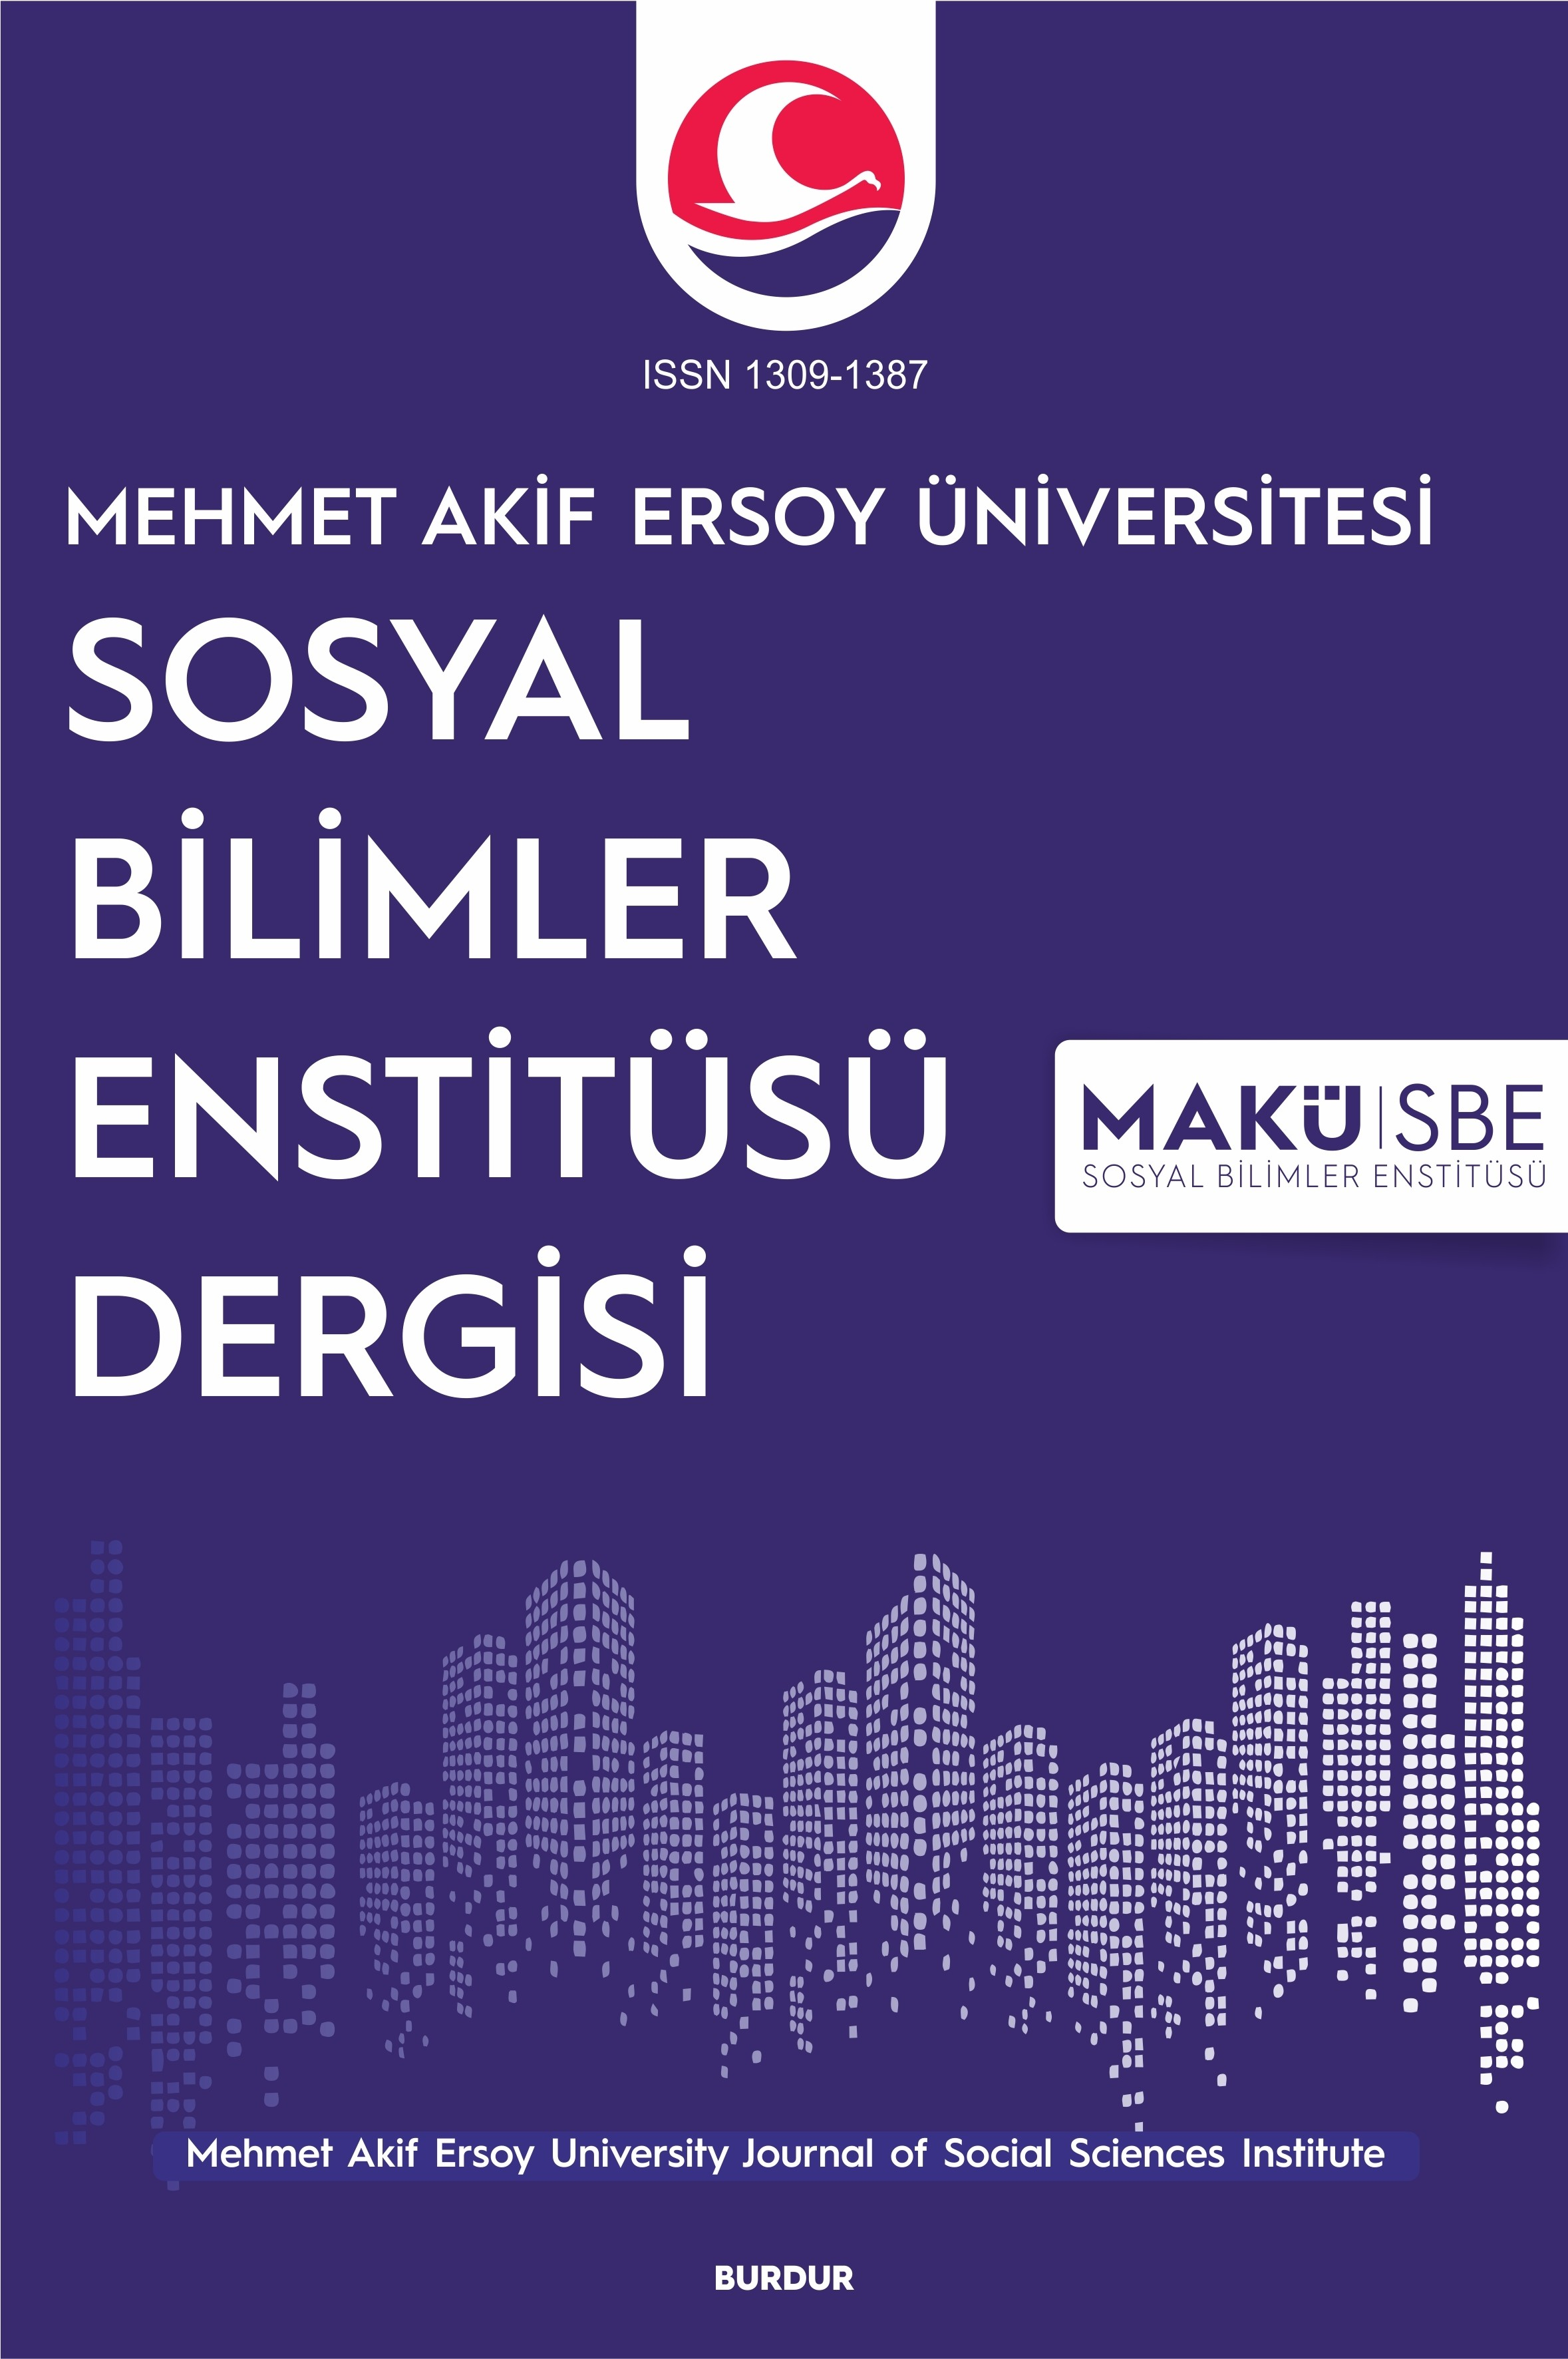 Mehmet Akif Ersoy University Journal of Social Sciences Institute